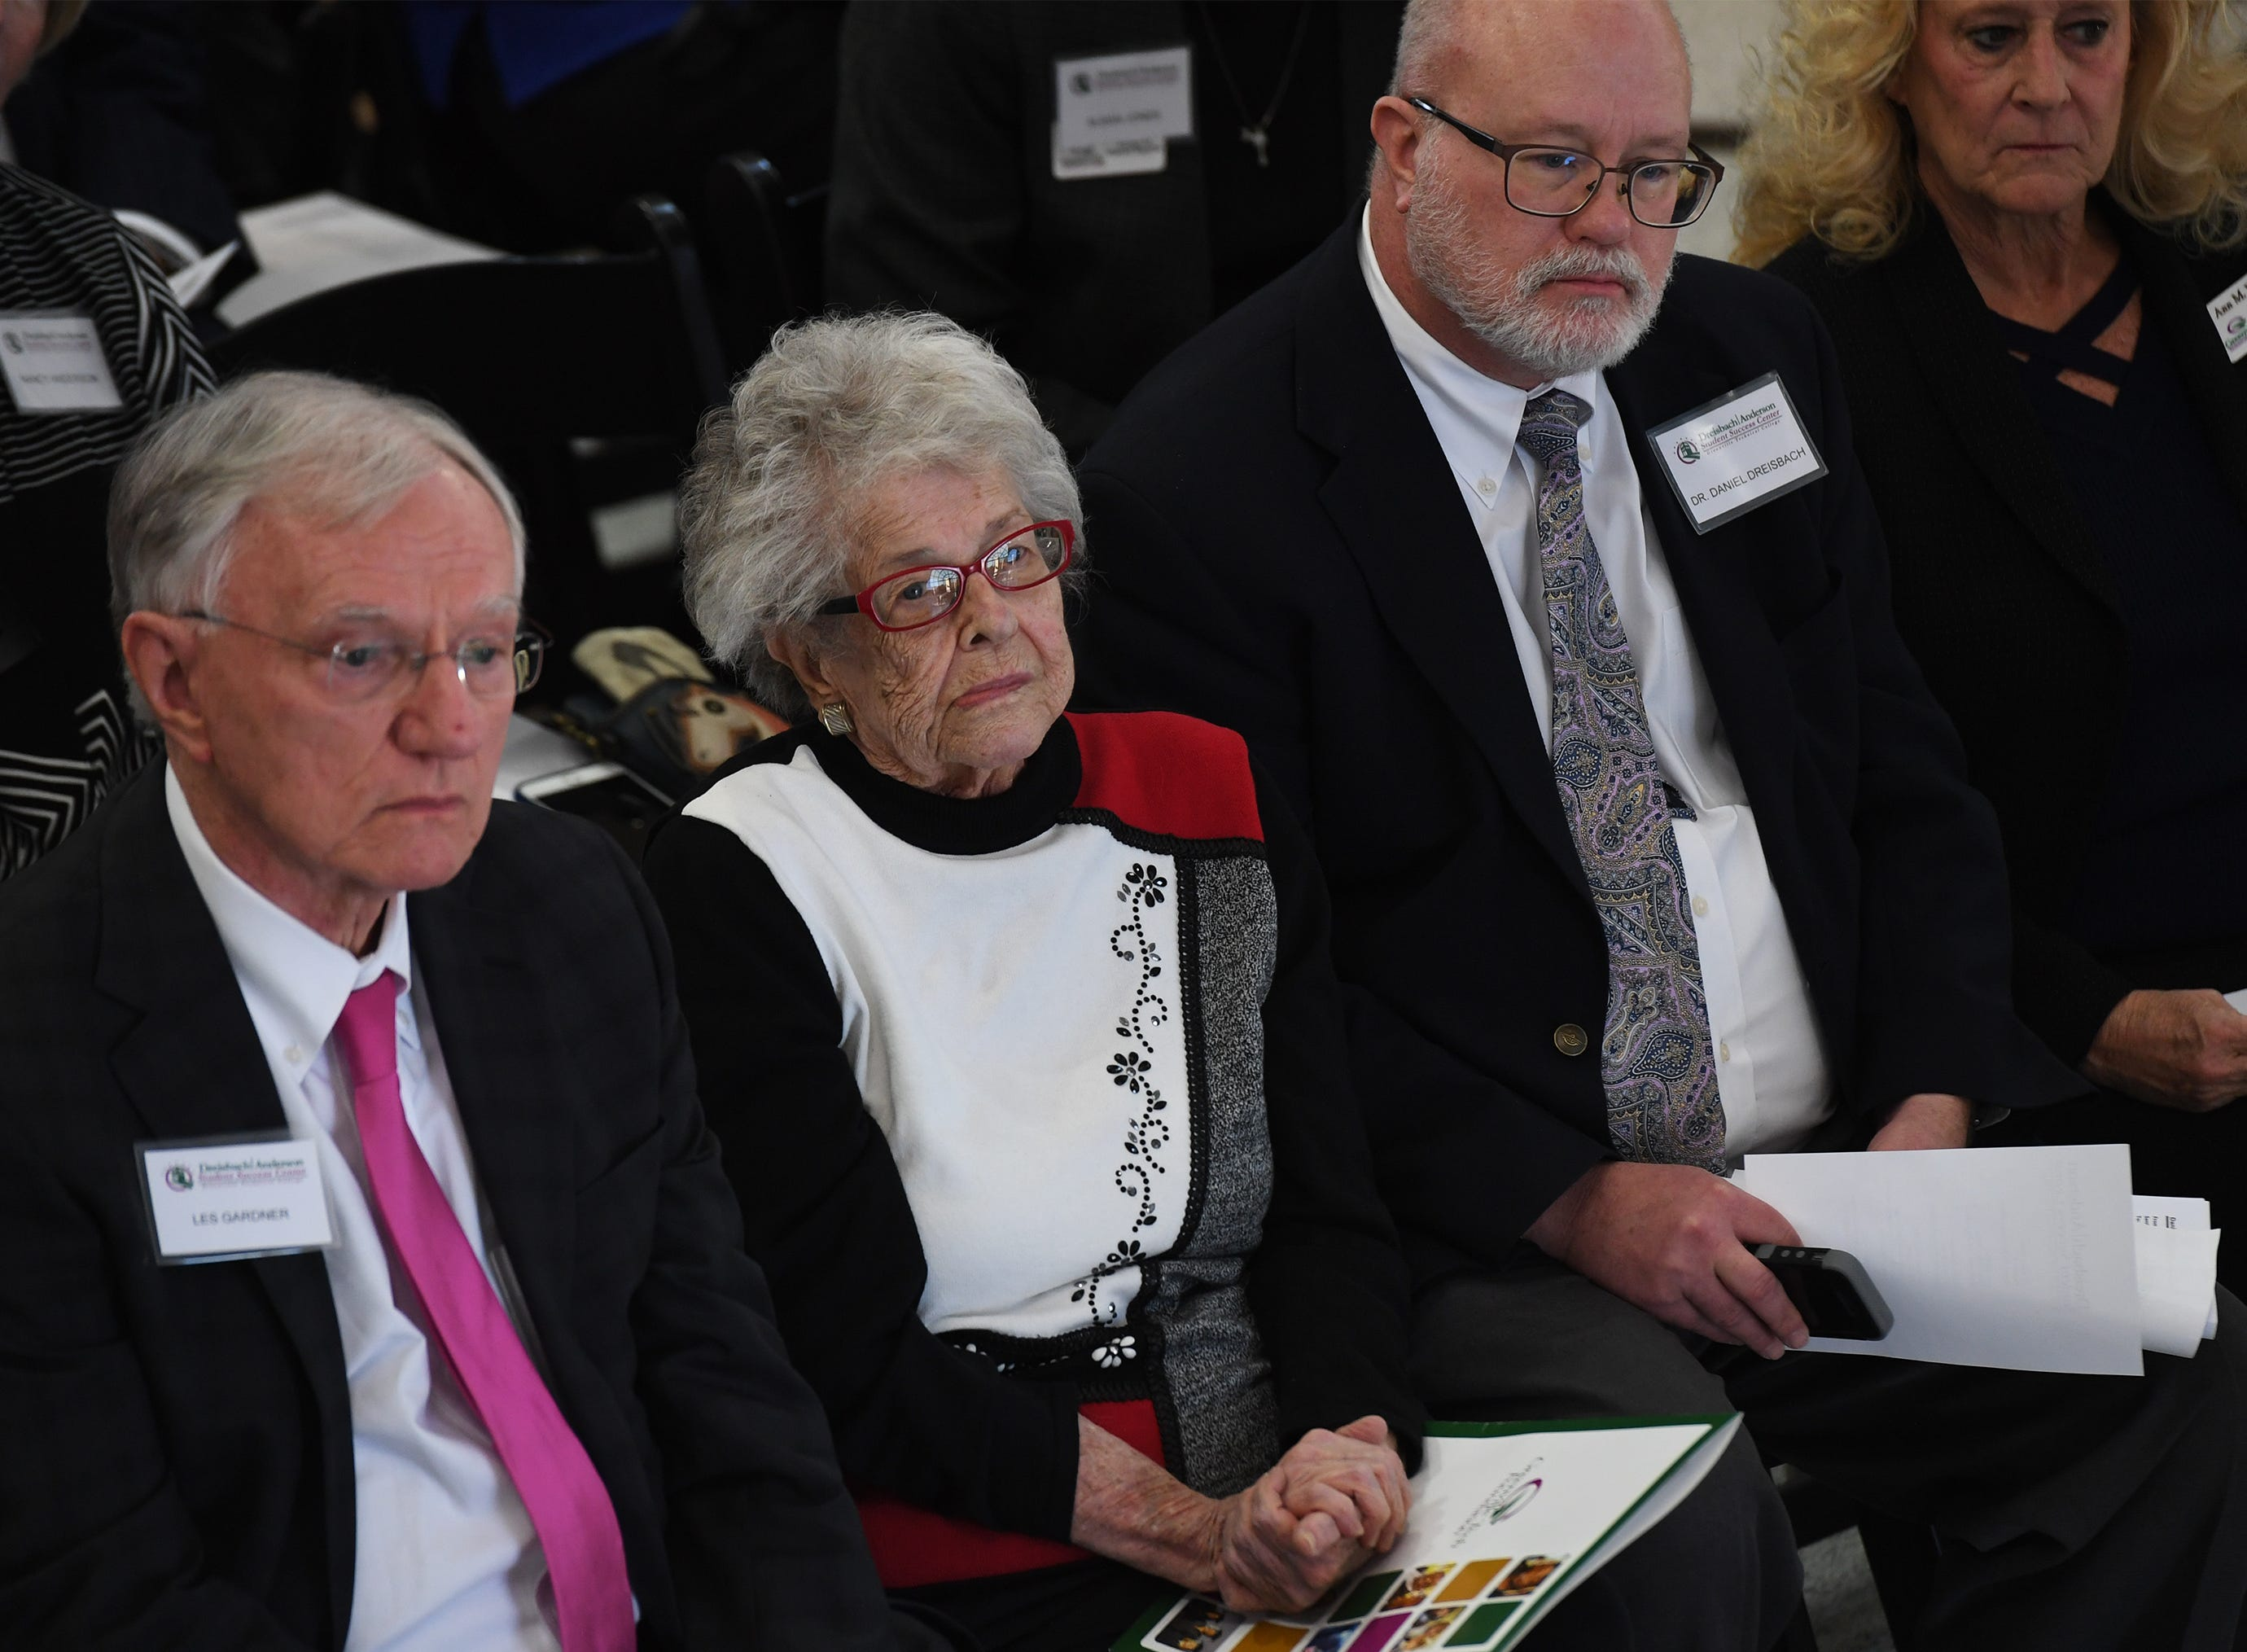 From left, Les Gardner, Dodie Anderson, Dr. Daniel Dreisback and Ann Wright listen to Dr. Keith Miller, president of Greenville Technical College, at Greenville Technical College Wednesday, Nov. 28, 2018.